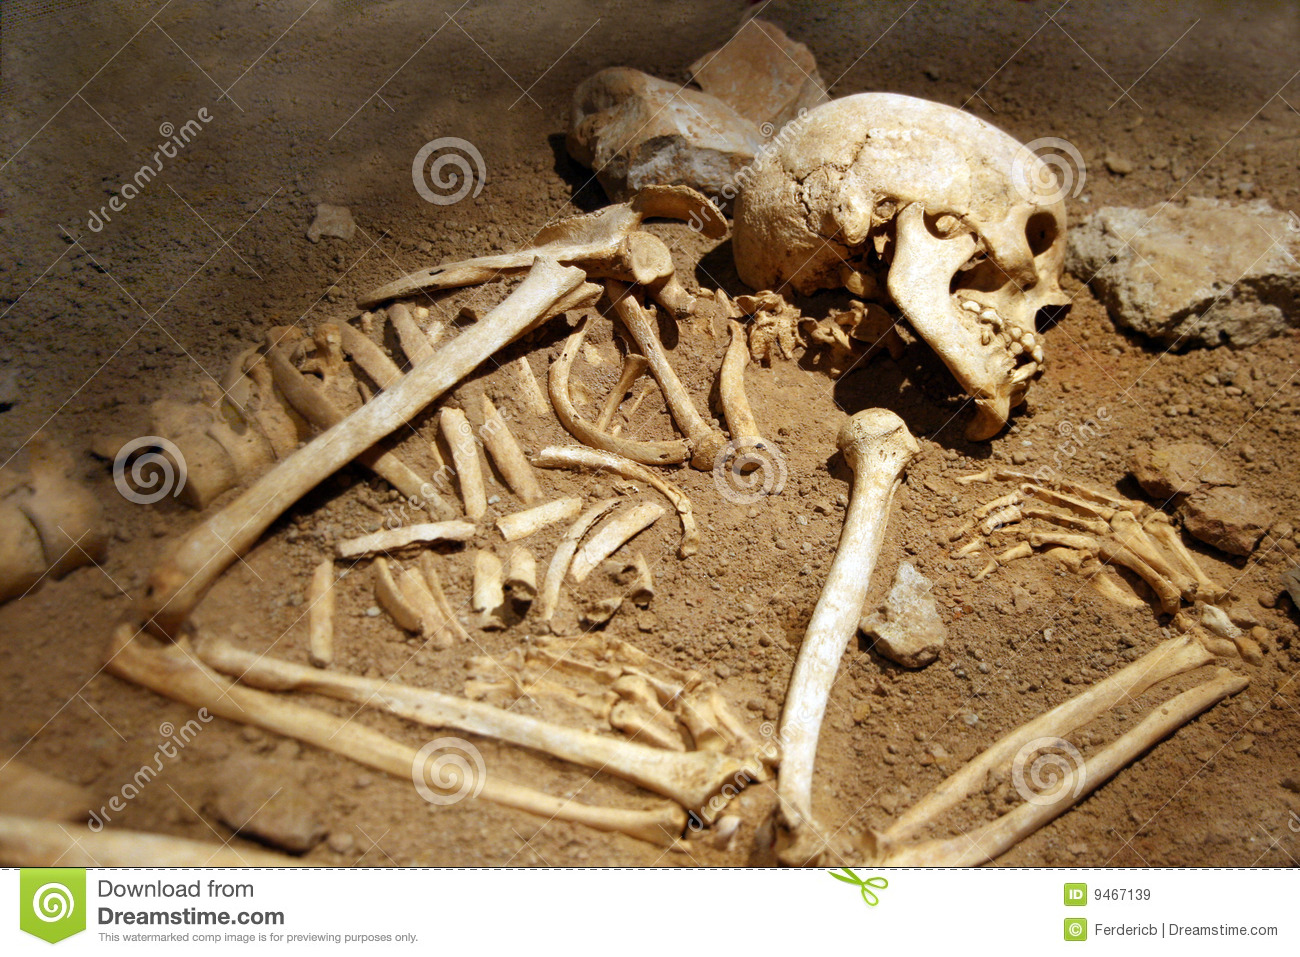 Human Bones Royalty Free Stock Images - Image: 9467139